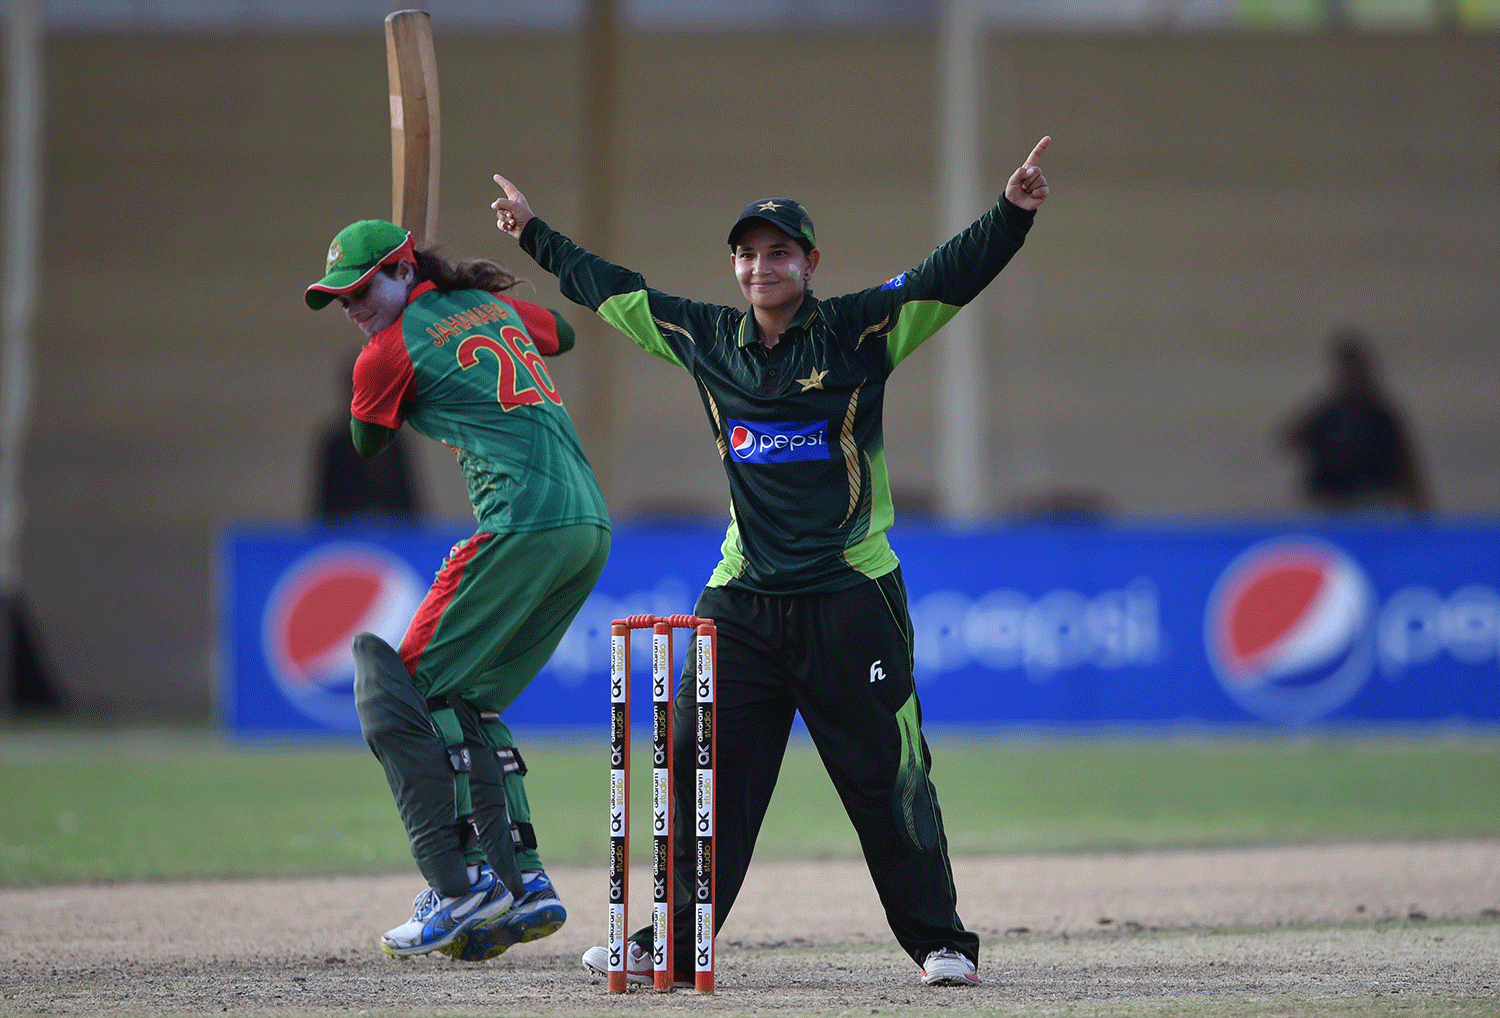 Pakistan's Anam Amin (R) celebrates after taking one of her four wickets. — AFP